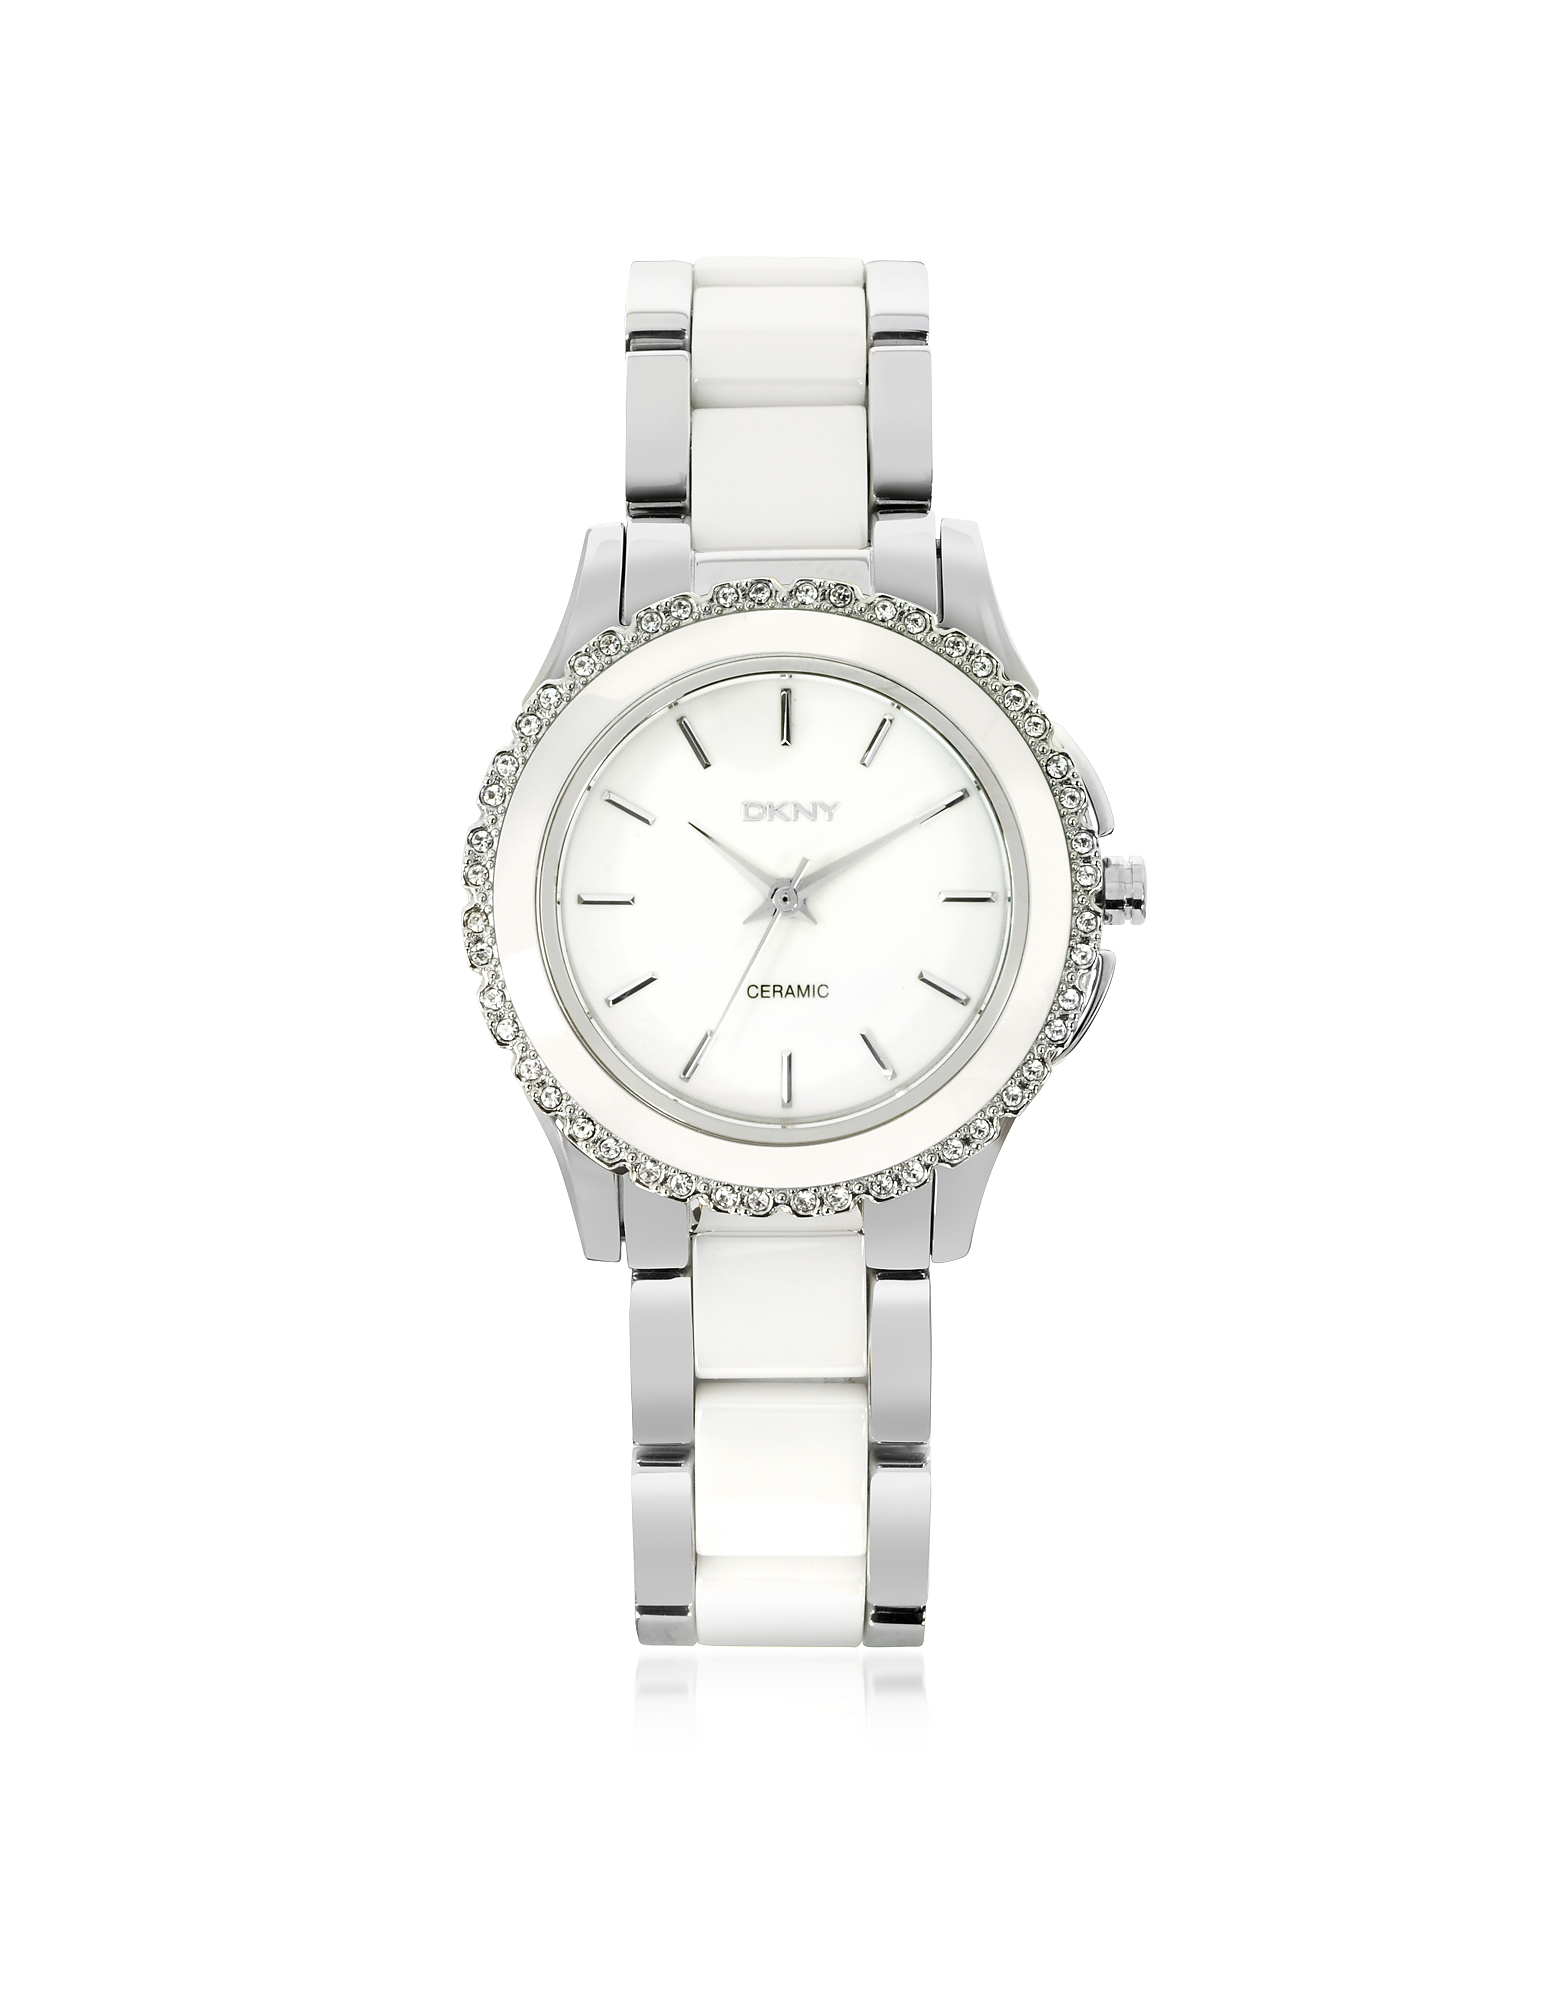 DKNY Women's Watches, Westside White Ceramic and Silver Stainless Steel Women's Watch